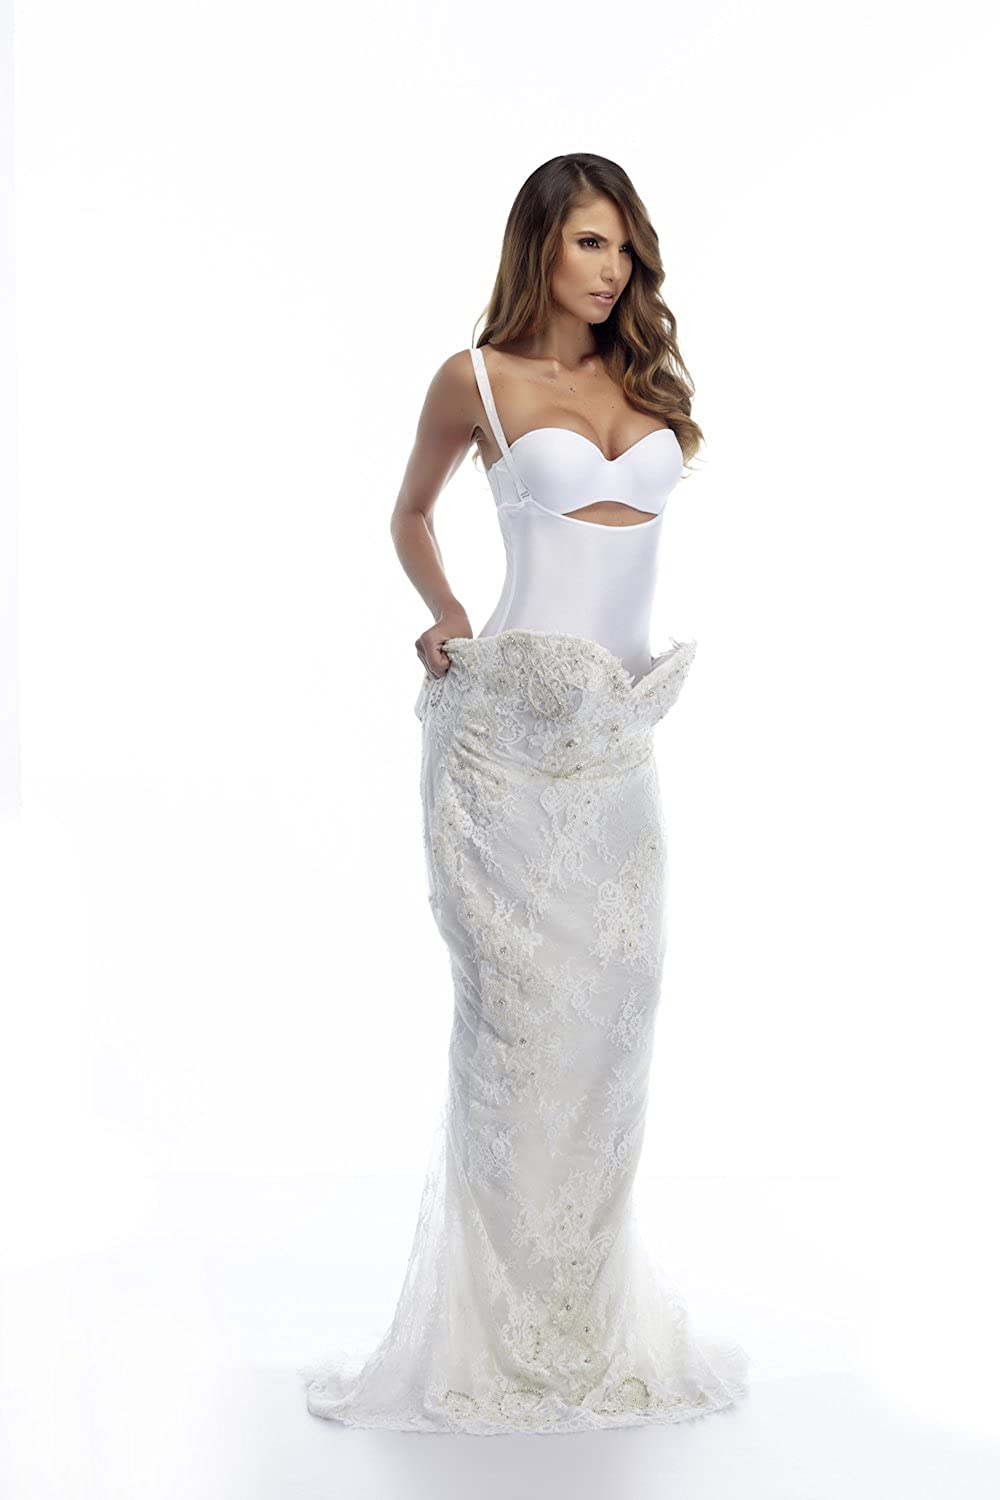 Control Bride Womens Fajas Colombianas Full Body Waistband Bride Wedding Dress Shaper Faja para Vestido de Novia 081800 at Amazon Womens Clothing store: